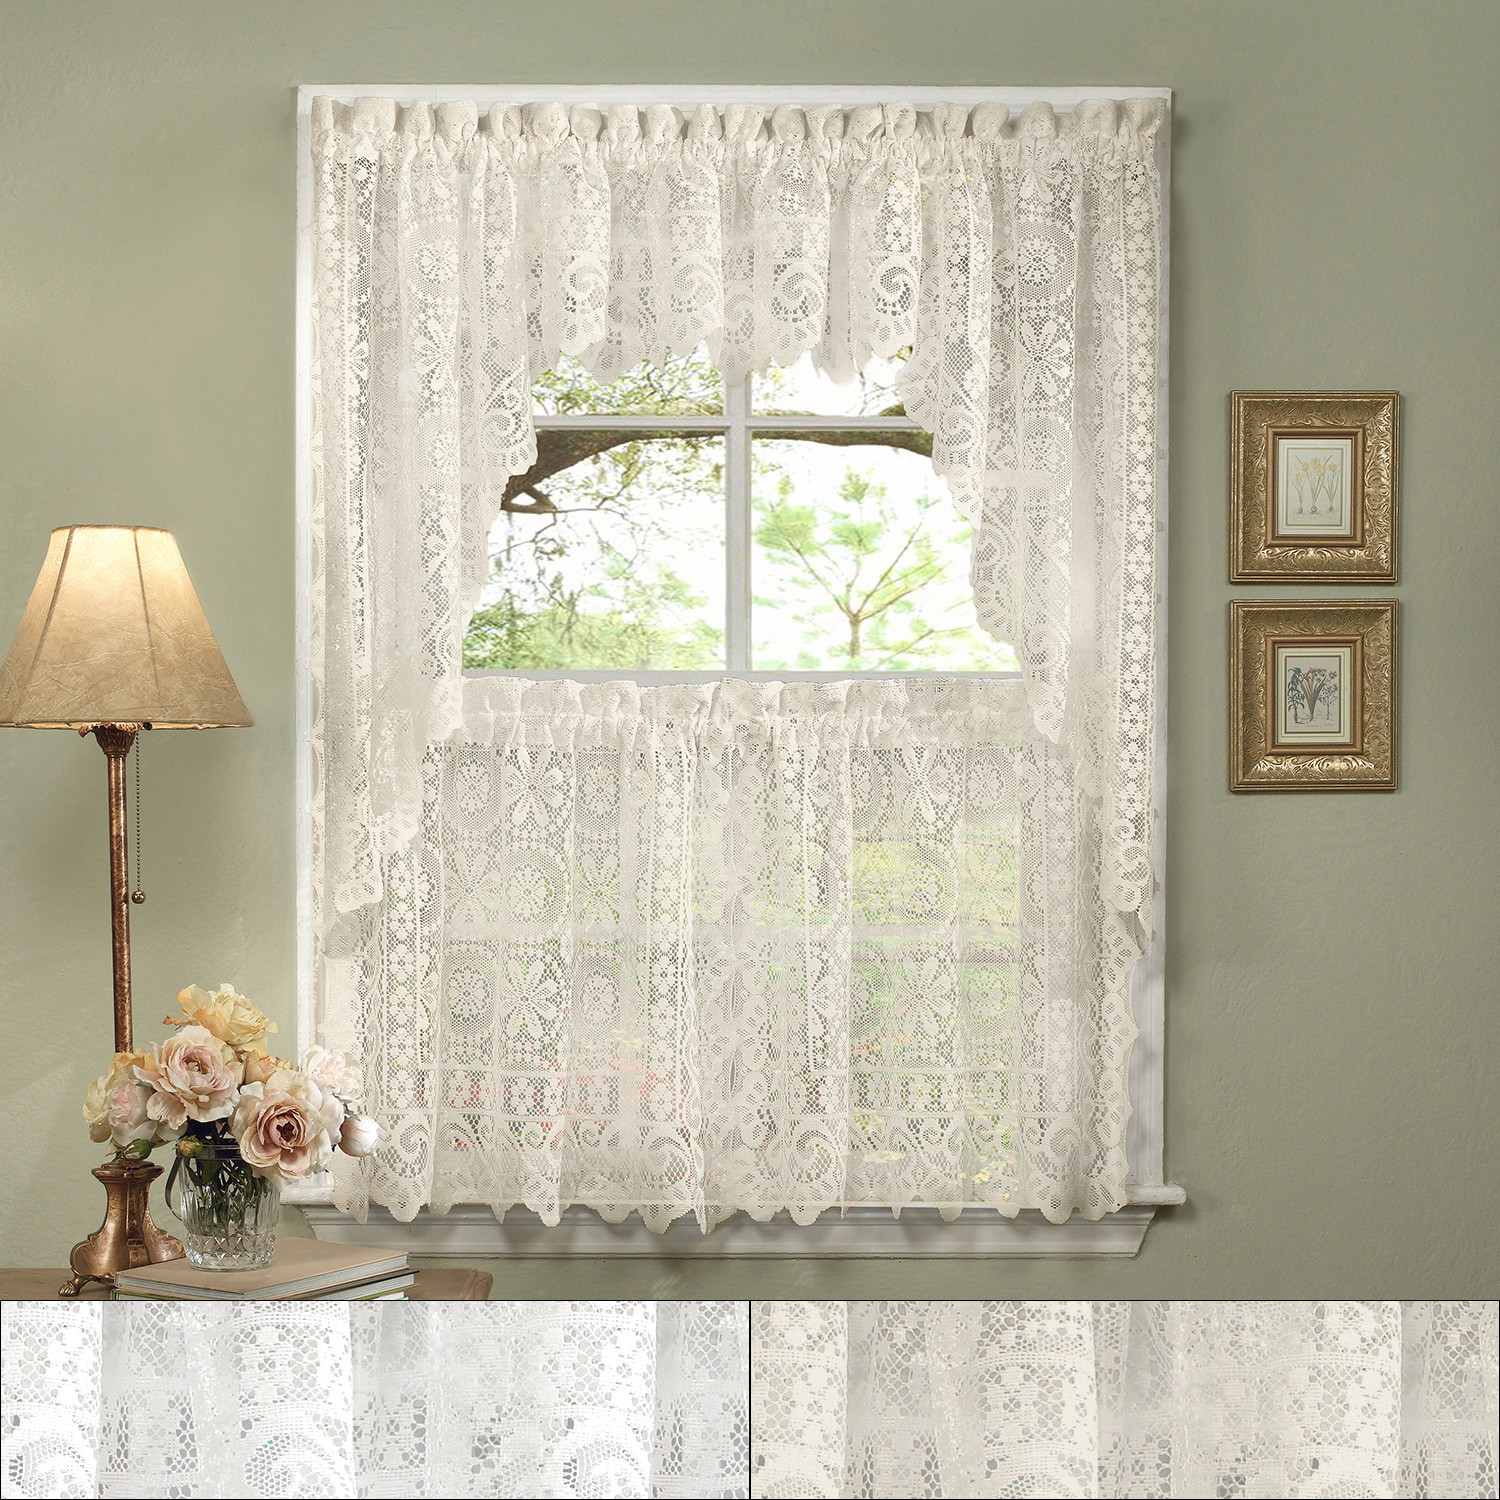 """Details About Hopewell Heavy Lace Floral Kitchen Curtain 24"""" Tier Pair, Valance & Swag Set Regarding Cotton Blend Ivy Floral Tier Curtain And Swag Sets (View 9 of 20)"""